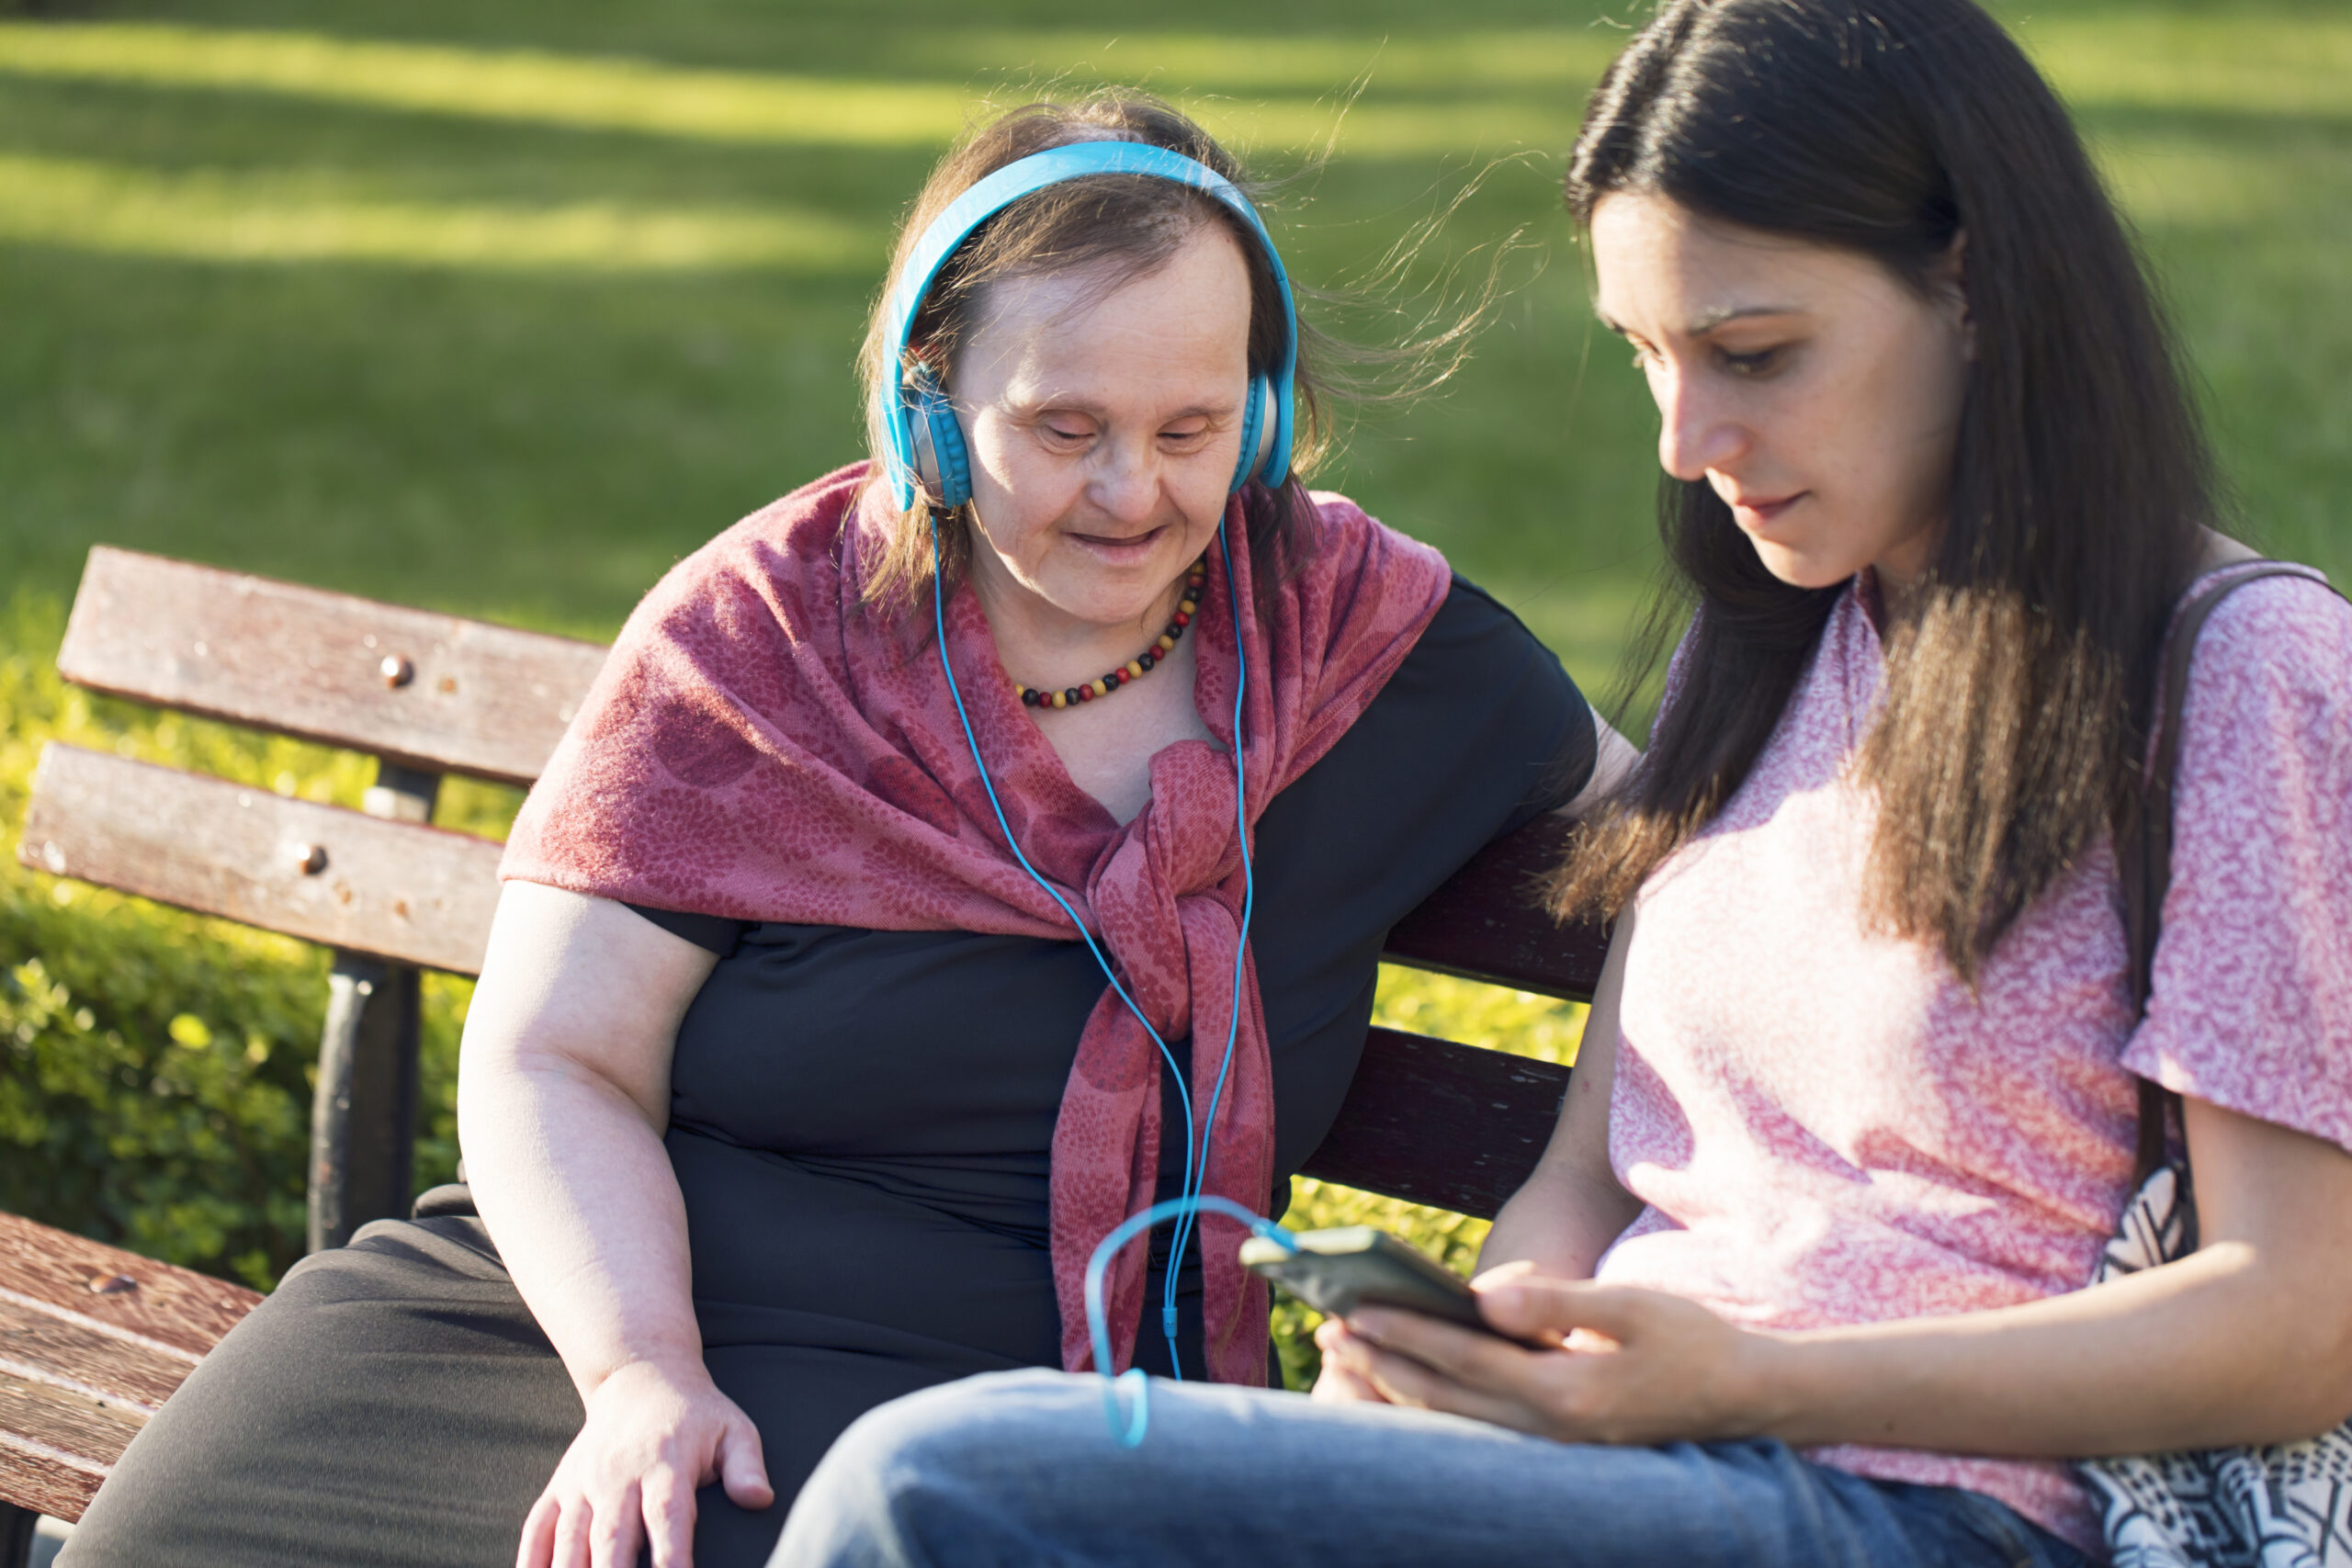 Woman with Down Syndrome and her friend having fun and listening music in a park.